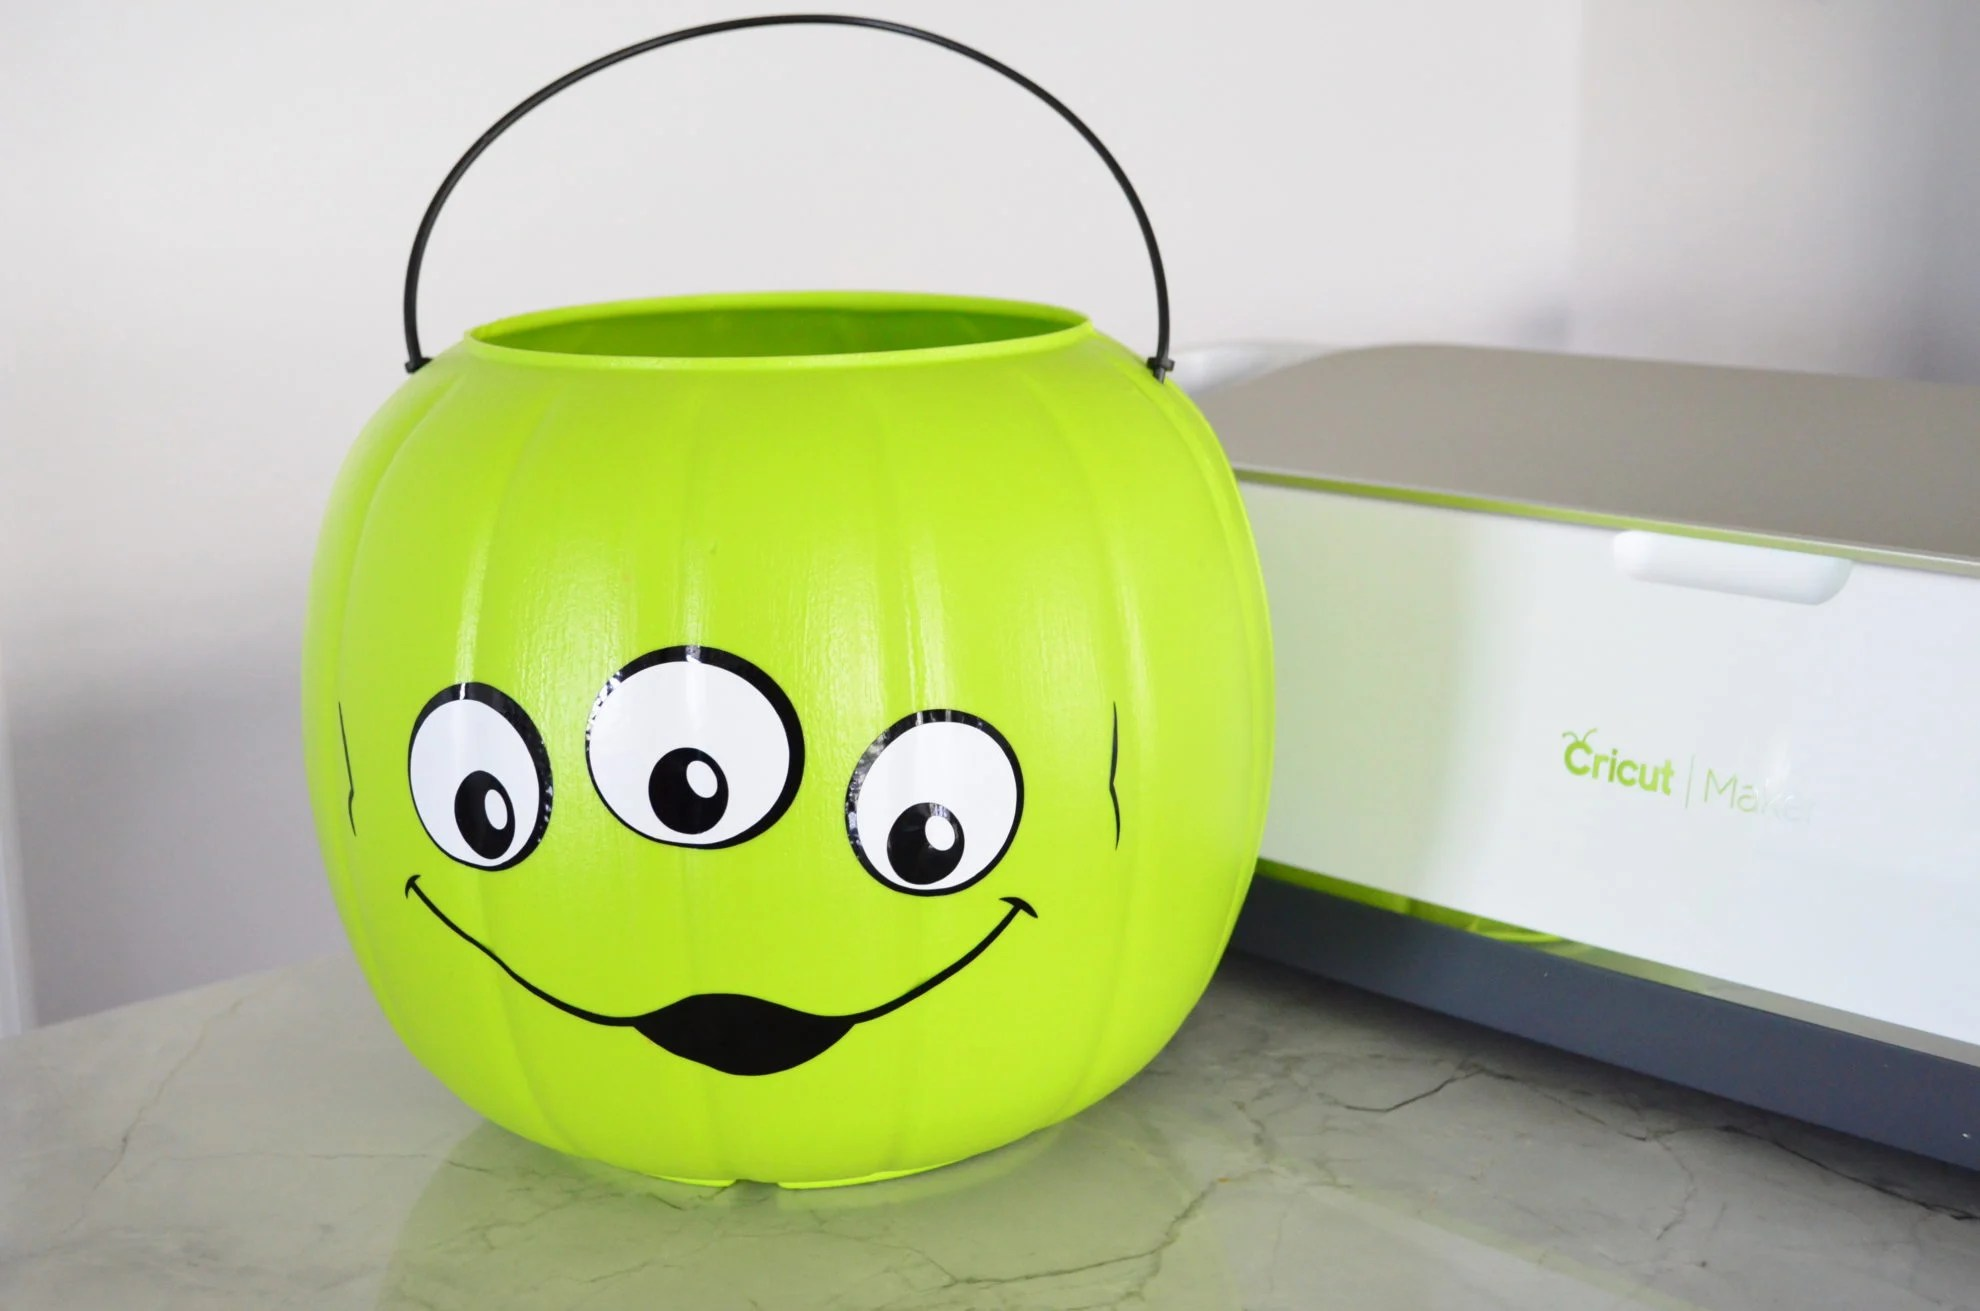 Toy Story Alien Halloween Trick Or Treat Bucket with Cricut Maker